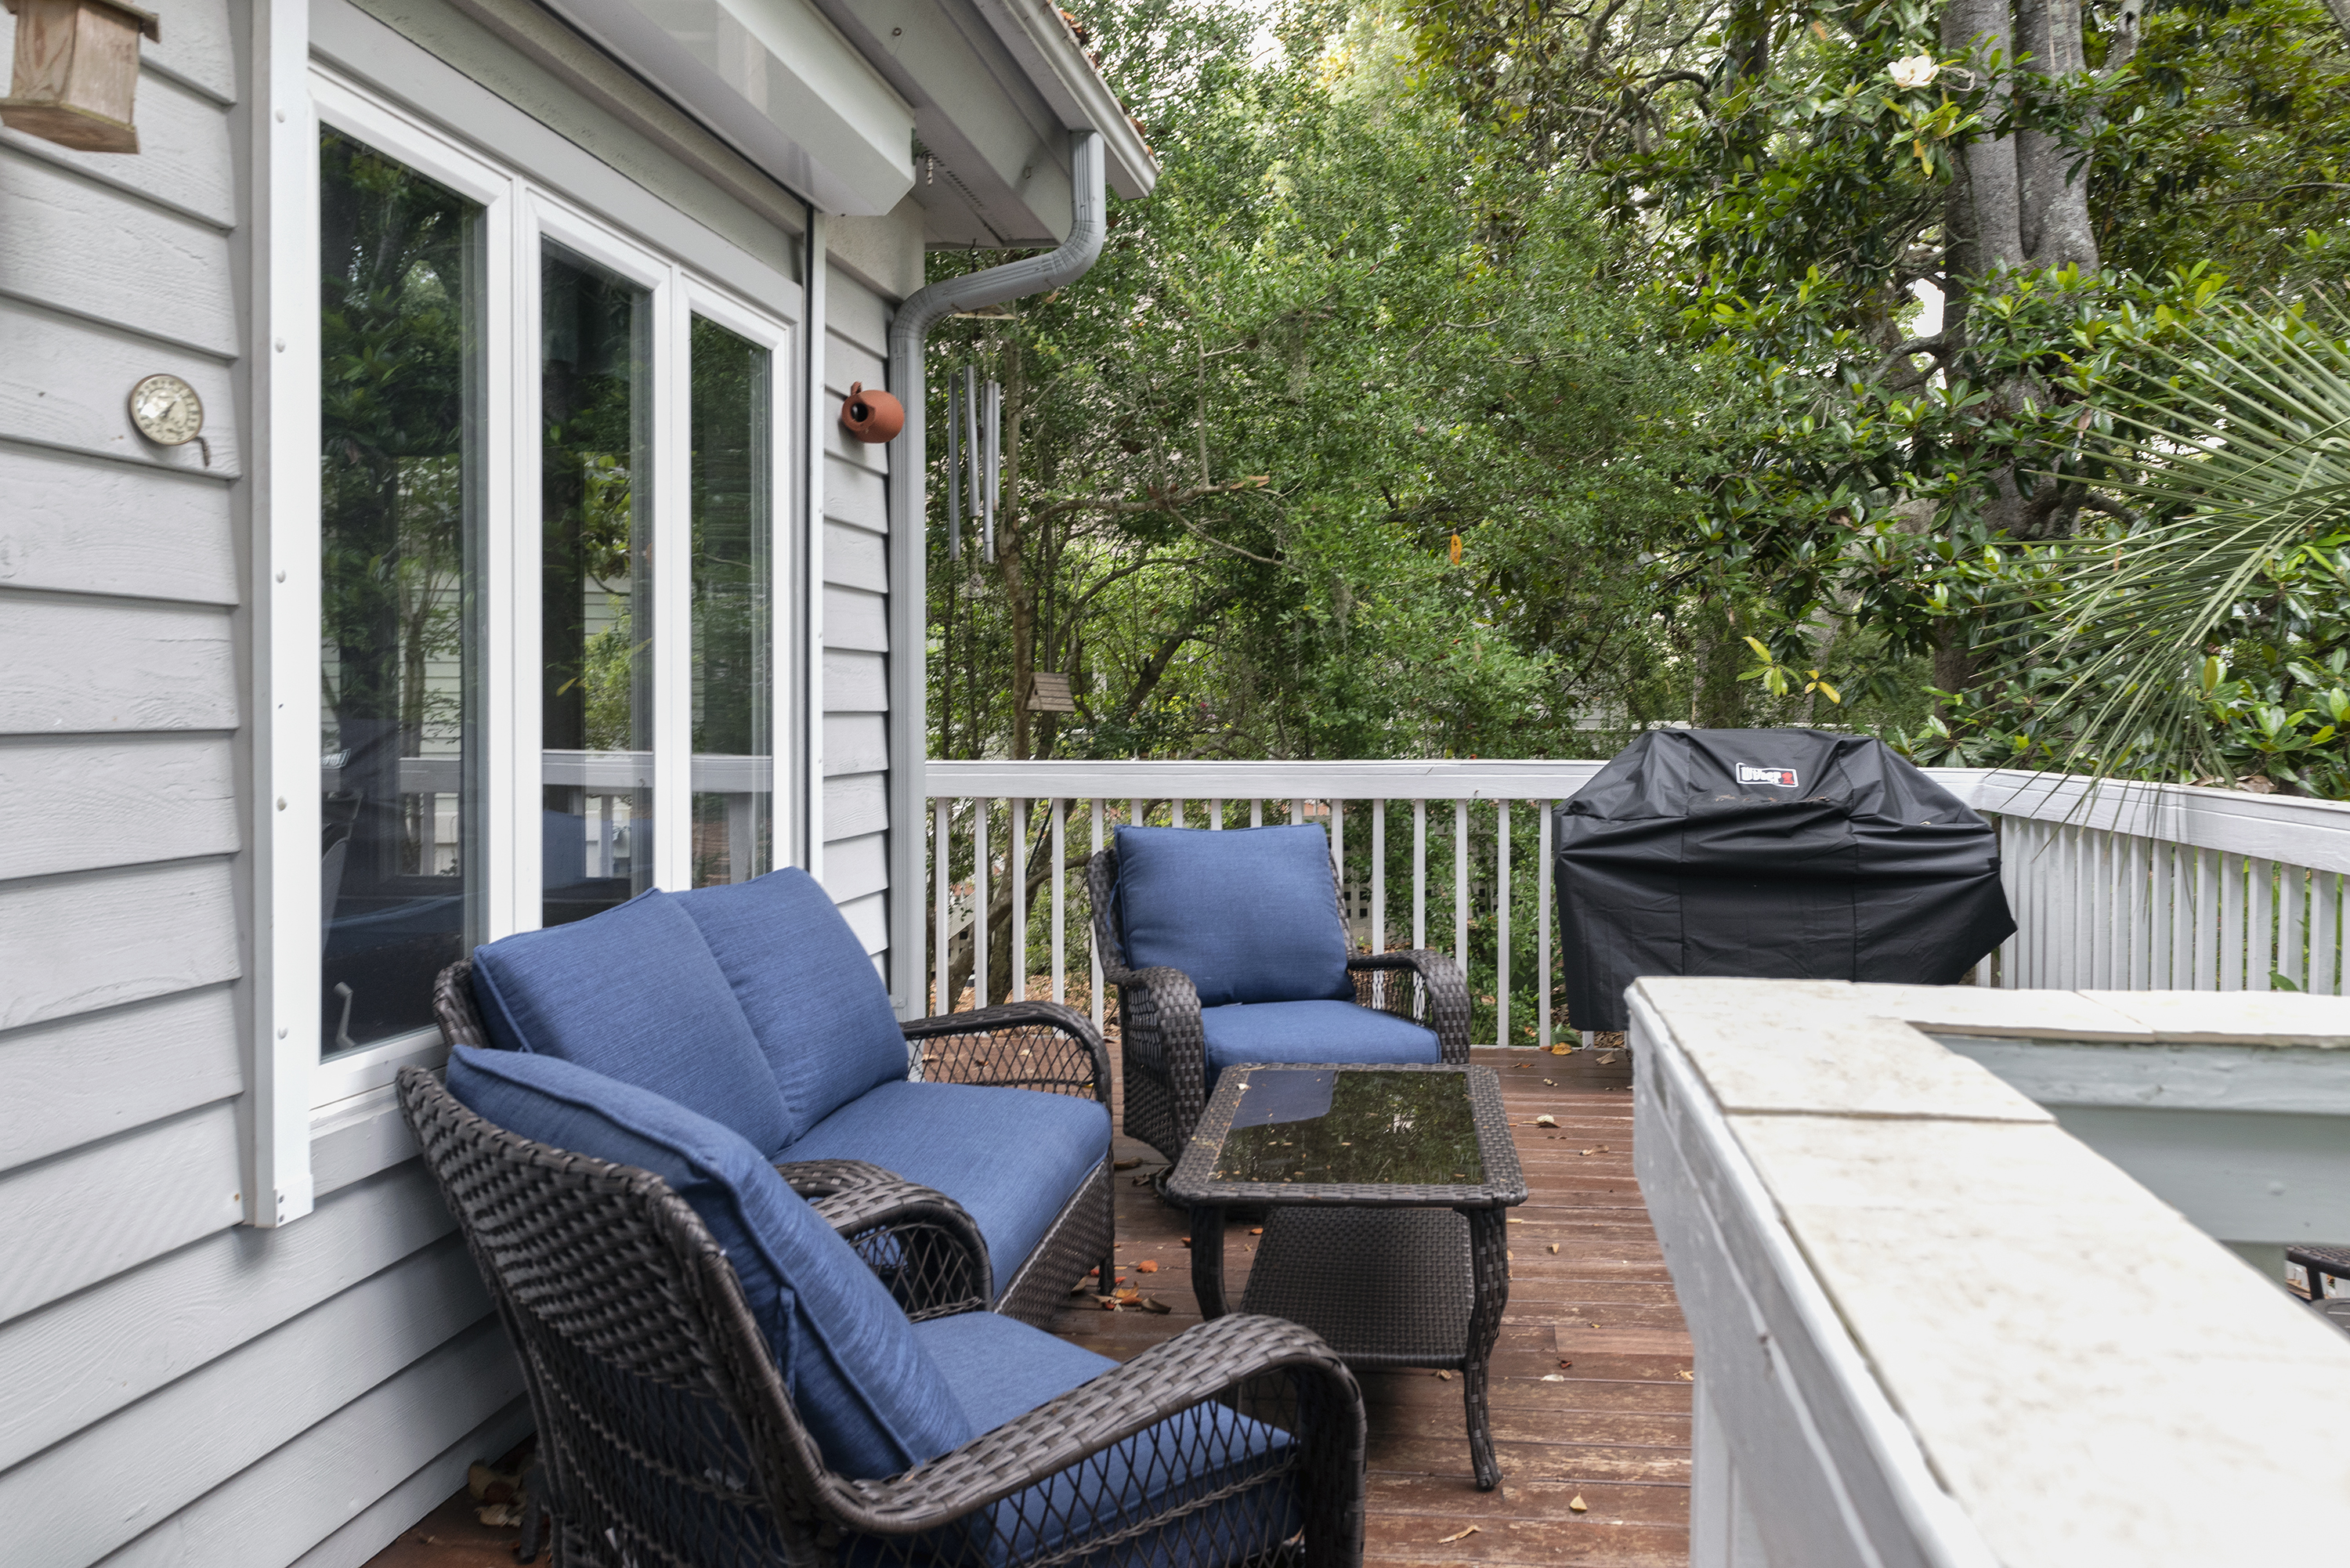 The rear deck provides a relaxing spot for evening cocktails and grilling!